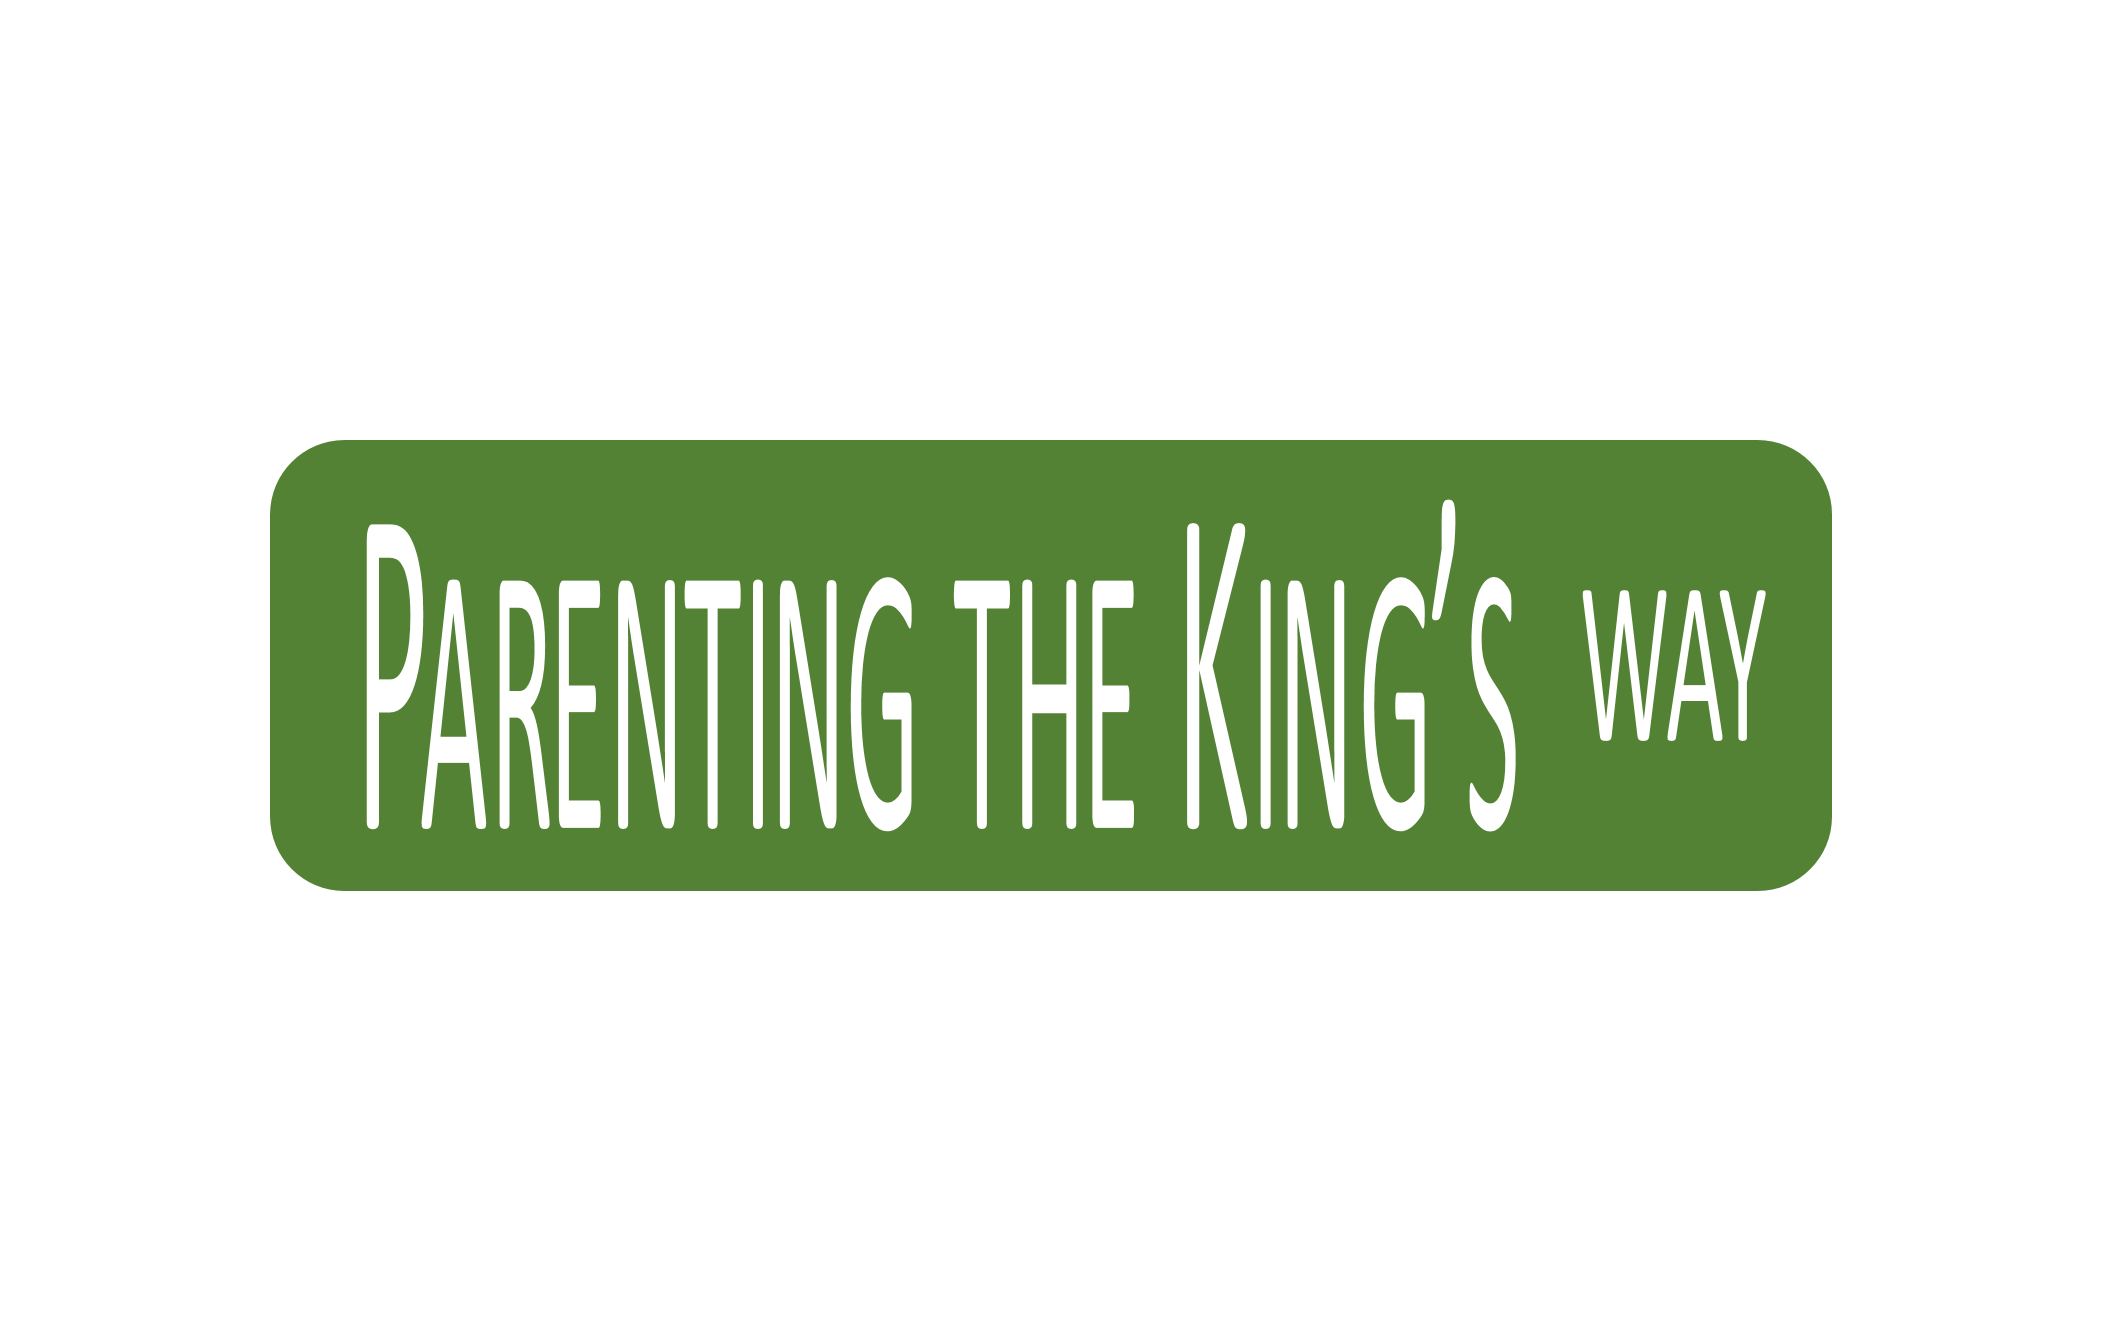 King's Parenting